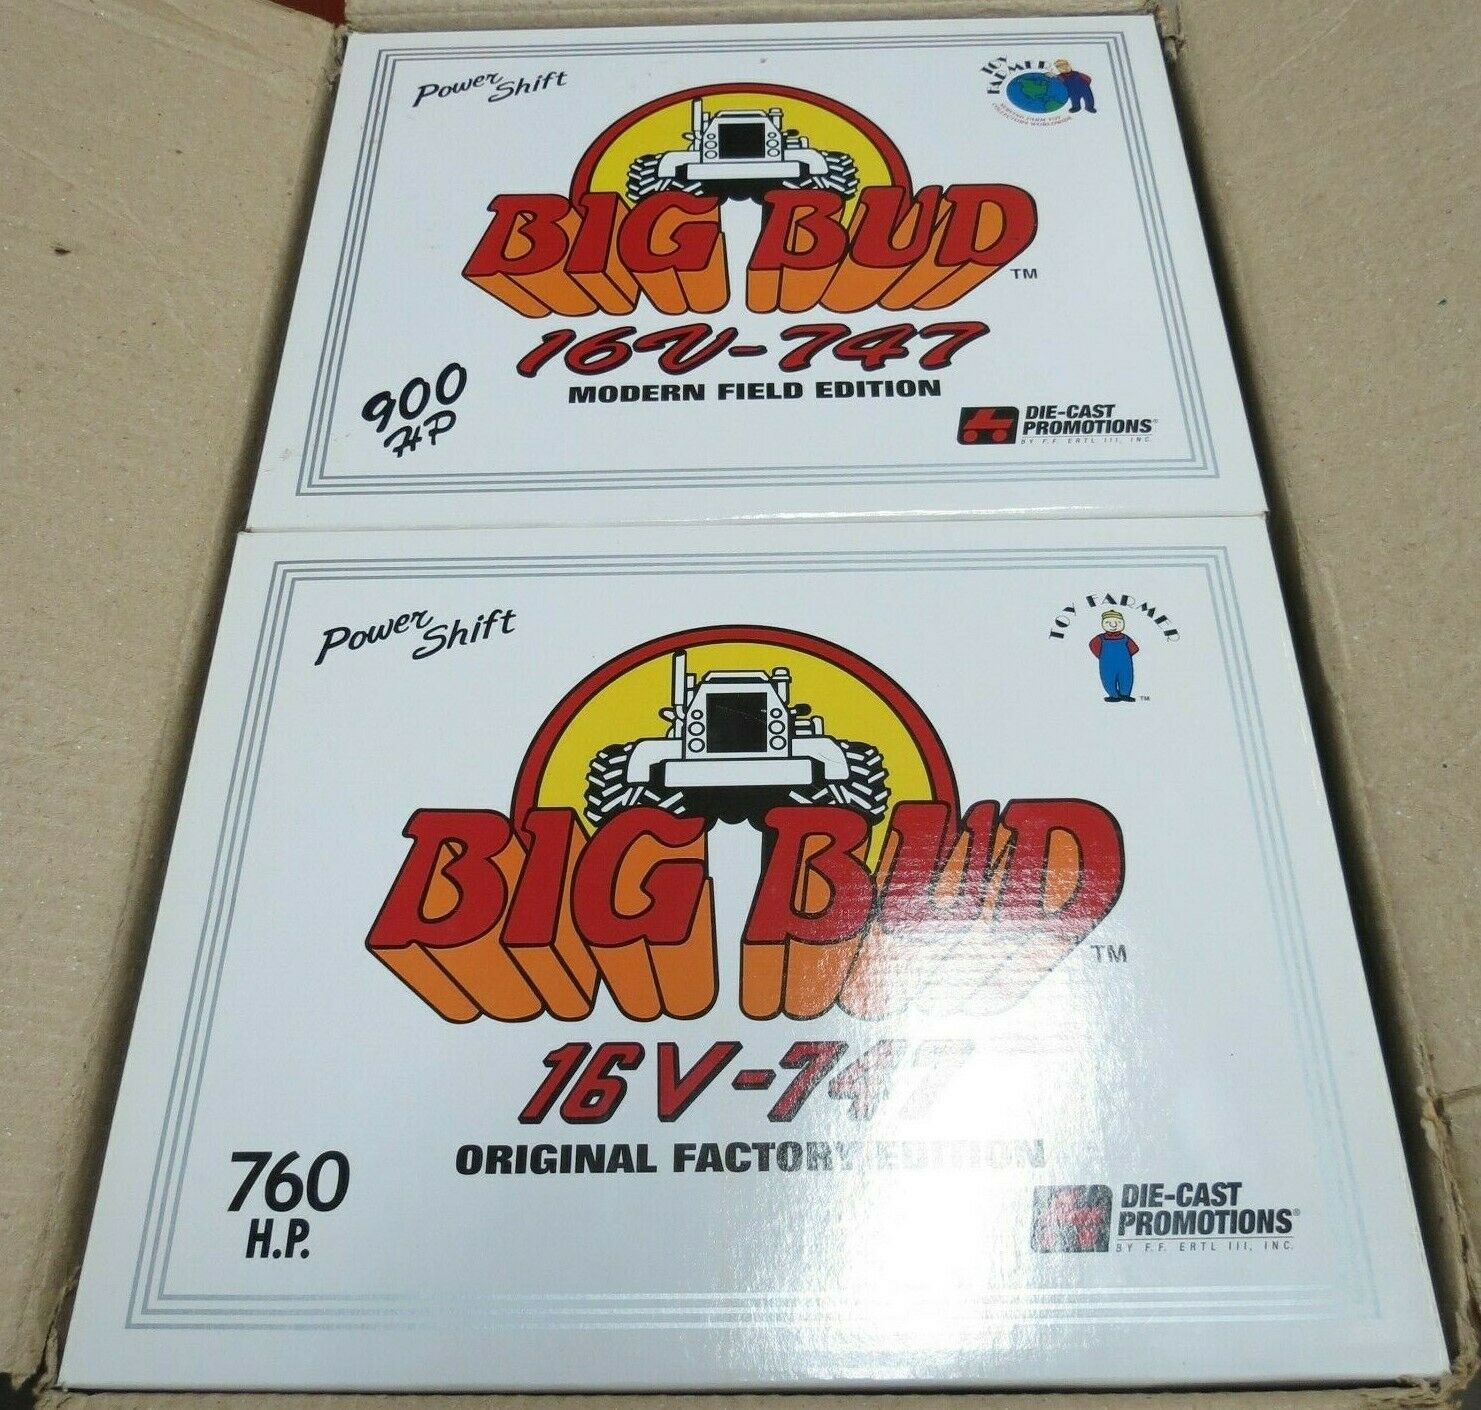 1 32 Big Bud 747 Tractor Pair Modern & Original Edition NIOB